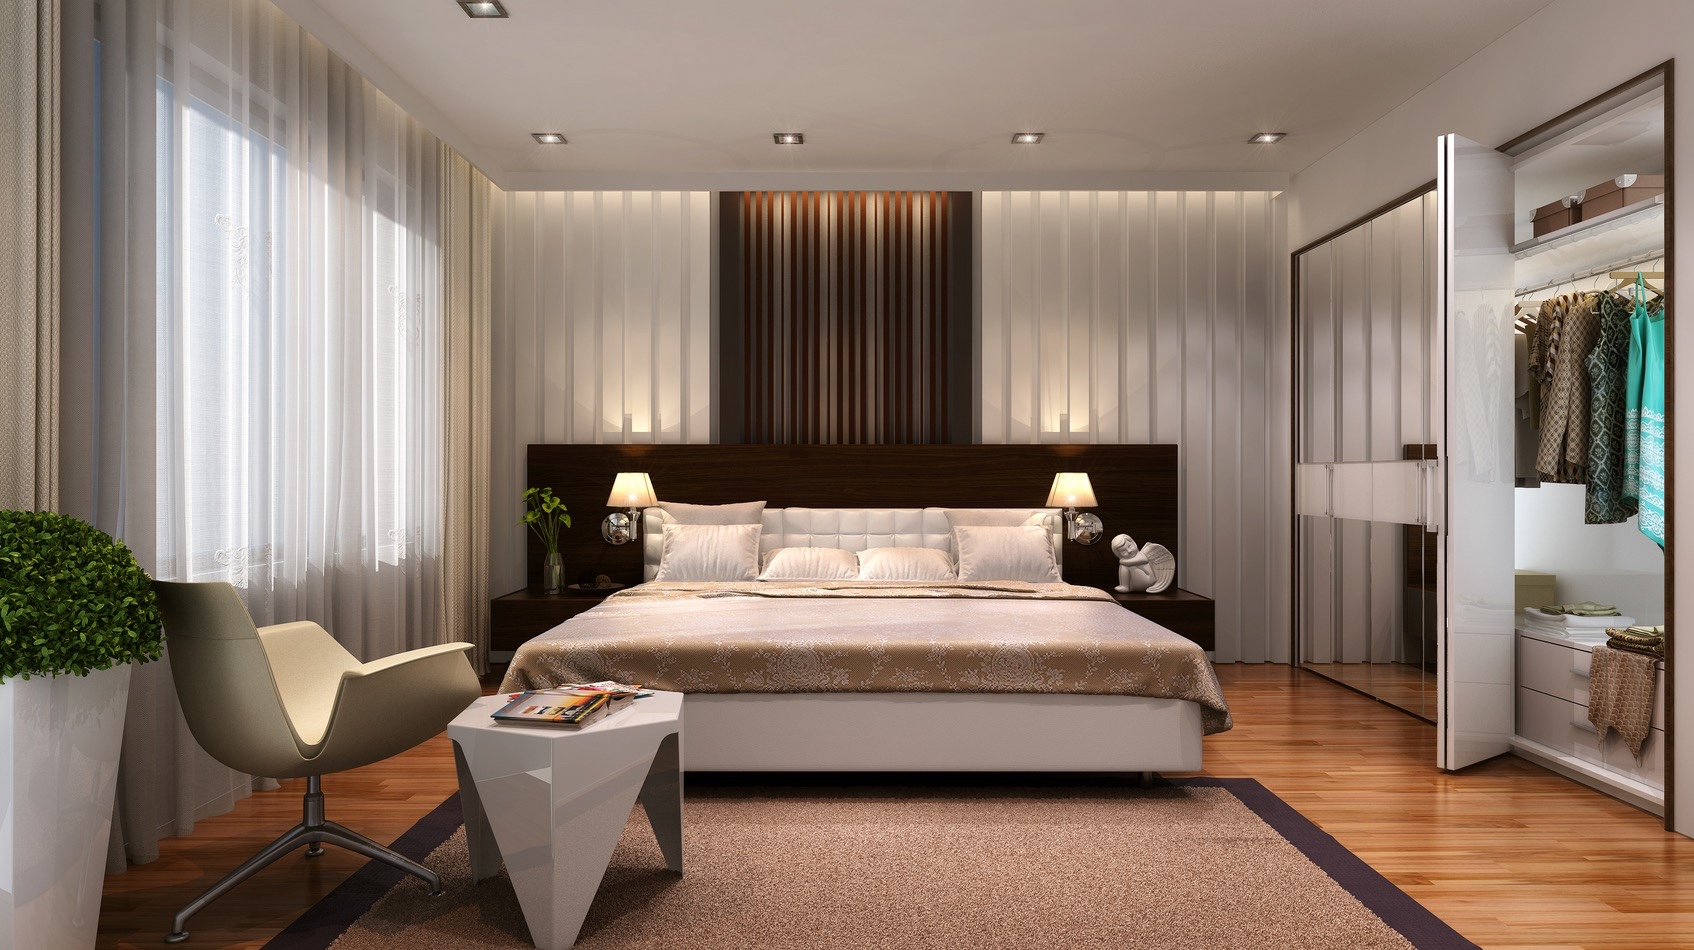 21 Cool Bedrooms for Clean and Simple Design Inspiration on Cool Bedroom Ideas For Small Rooms  id=64325